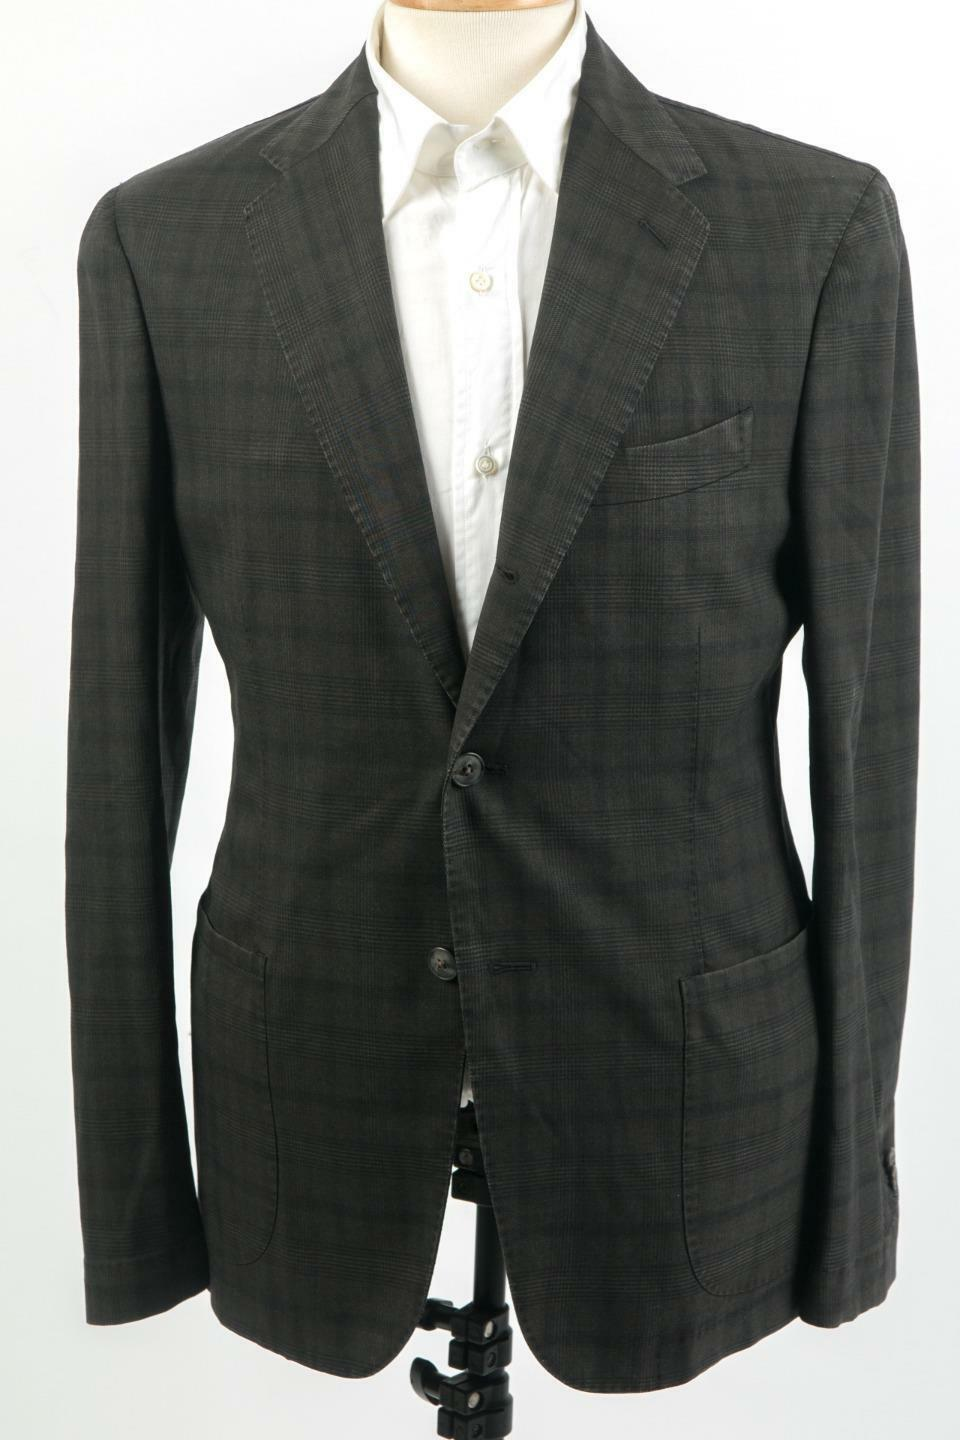 Boglioli New 1895 3 Roll 2 Button Virgin Wool grau Tonal Plaid Suit 48 IT 38 US